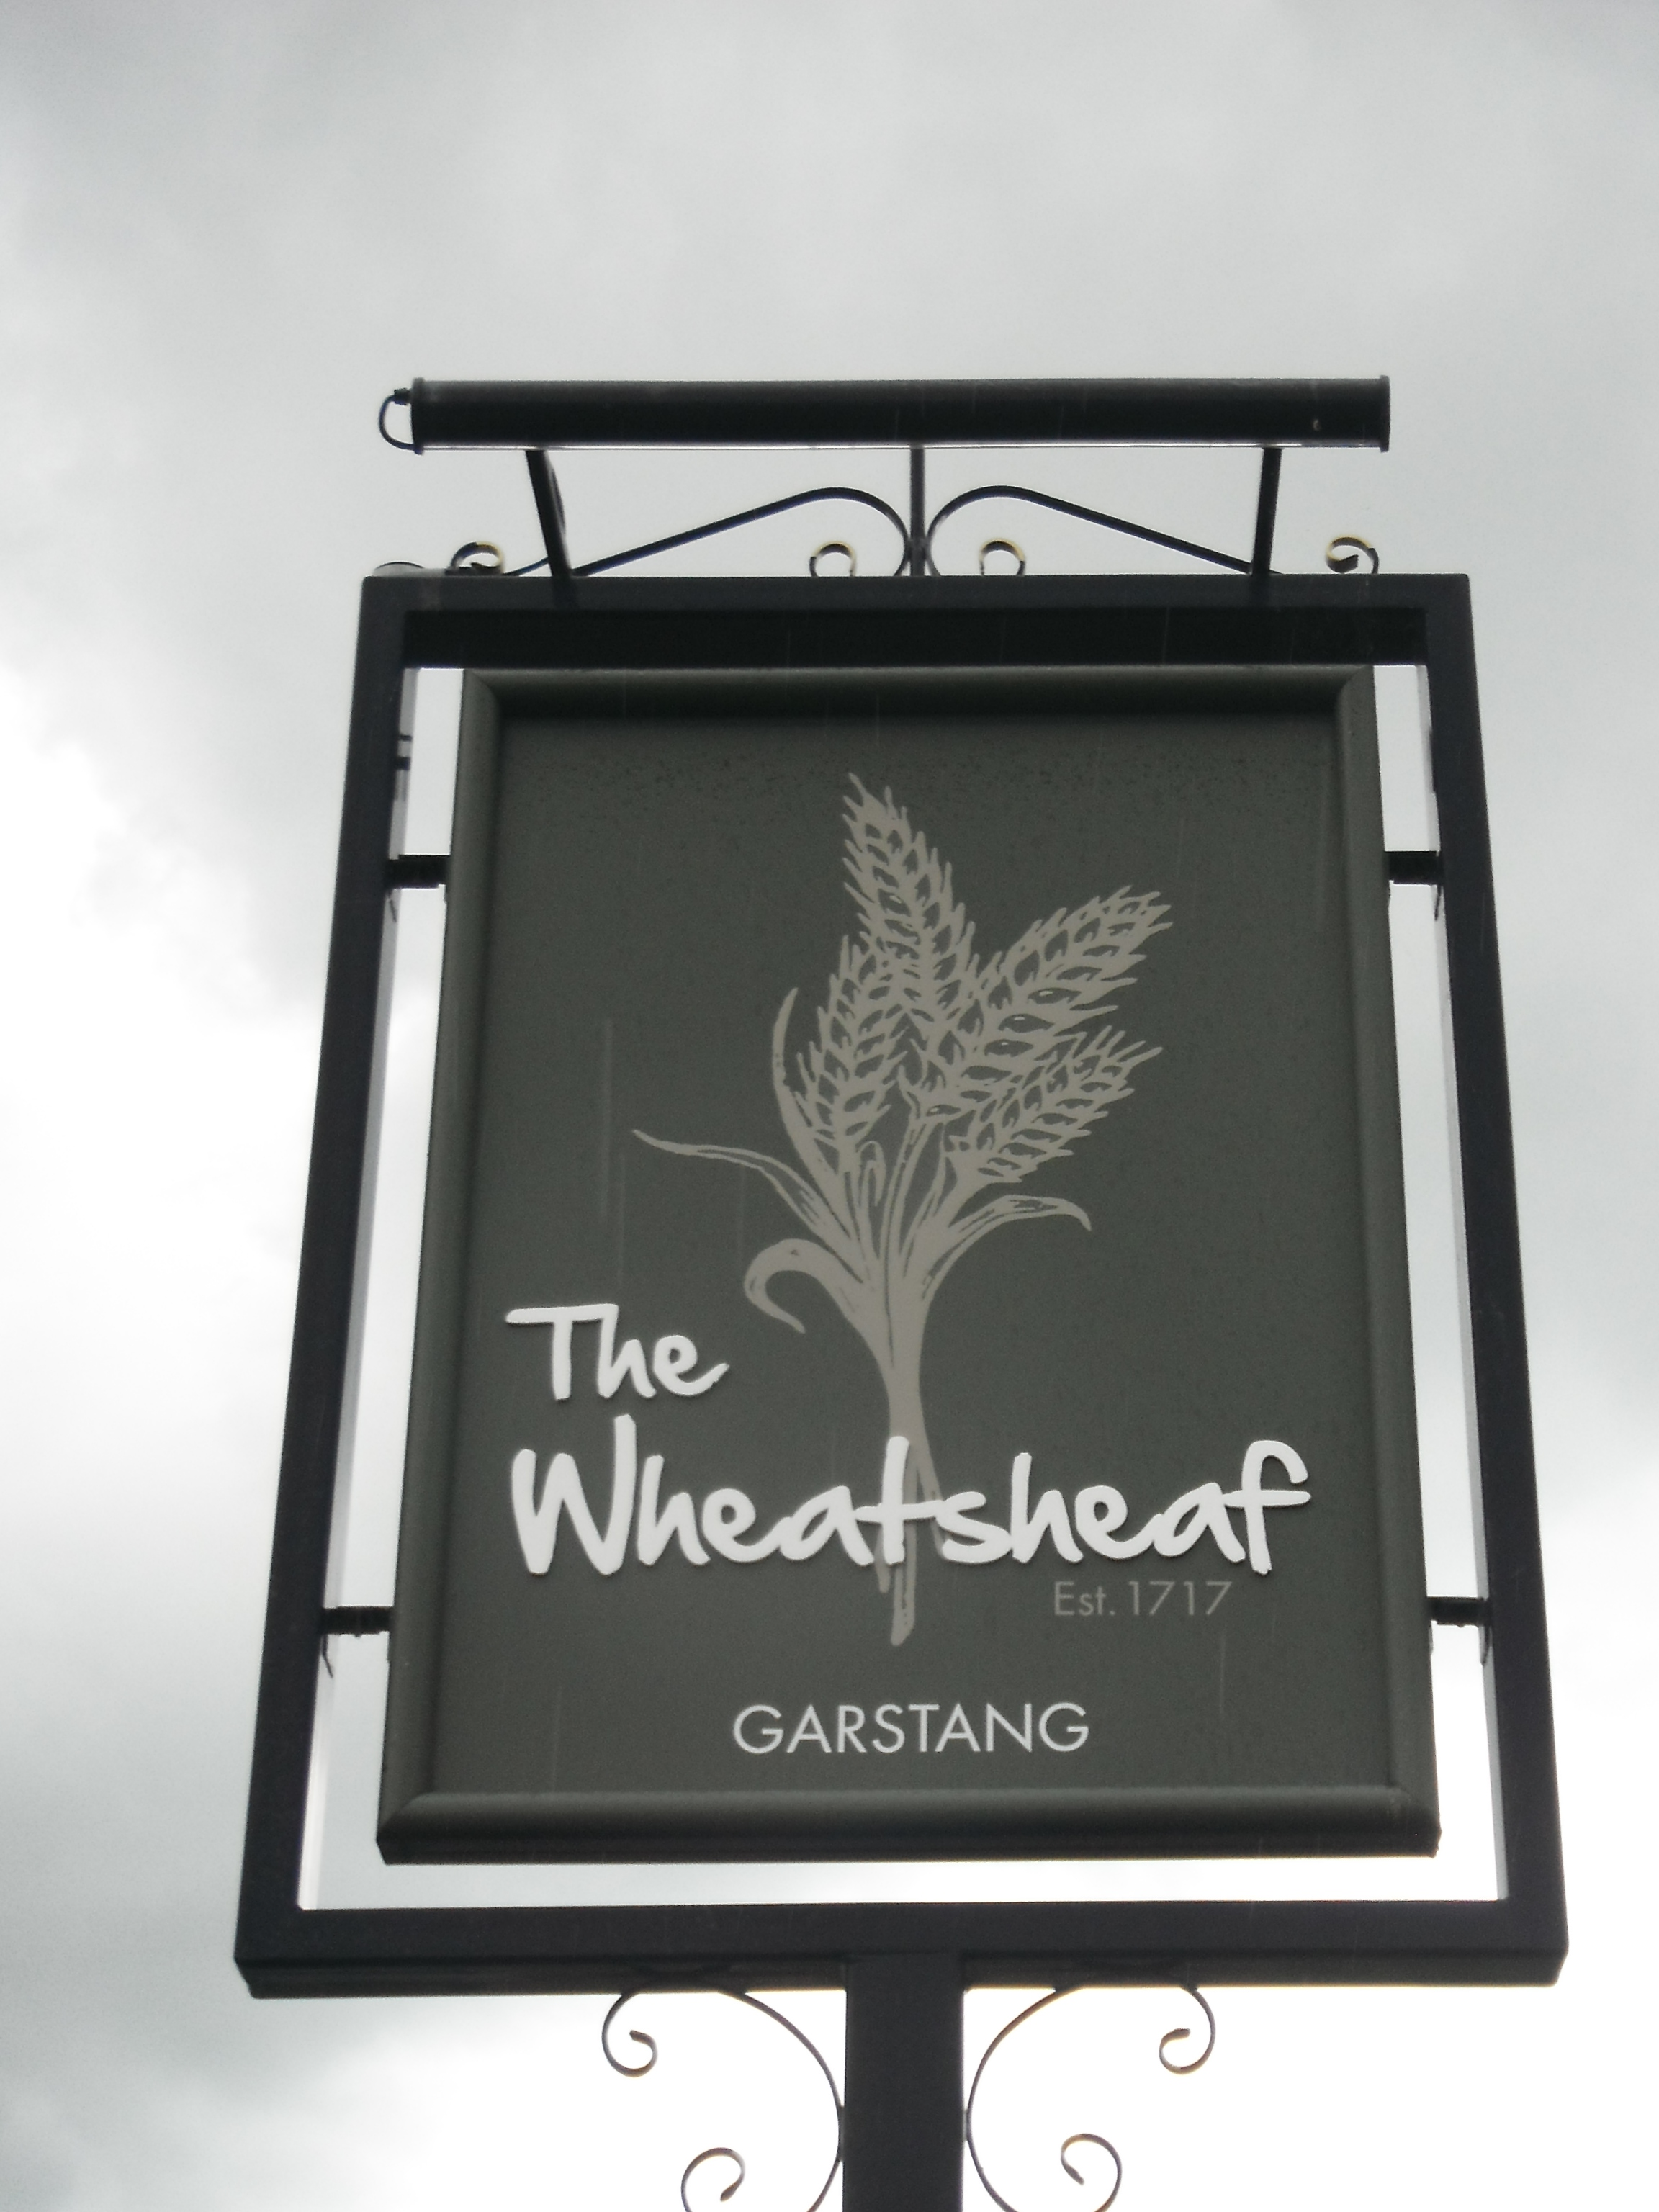 Photo taken by me - pub sign for The Wheatsheaf - Garstang